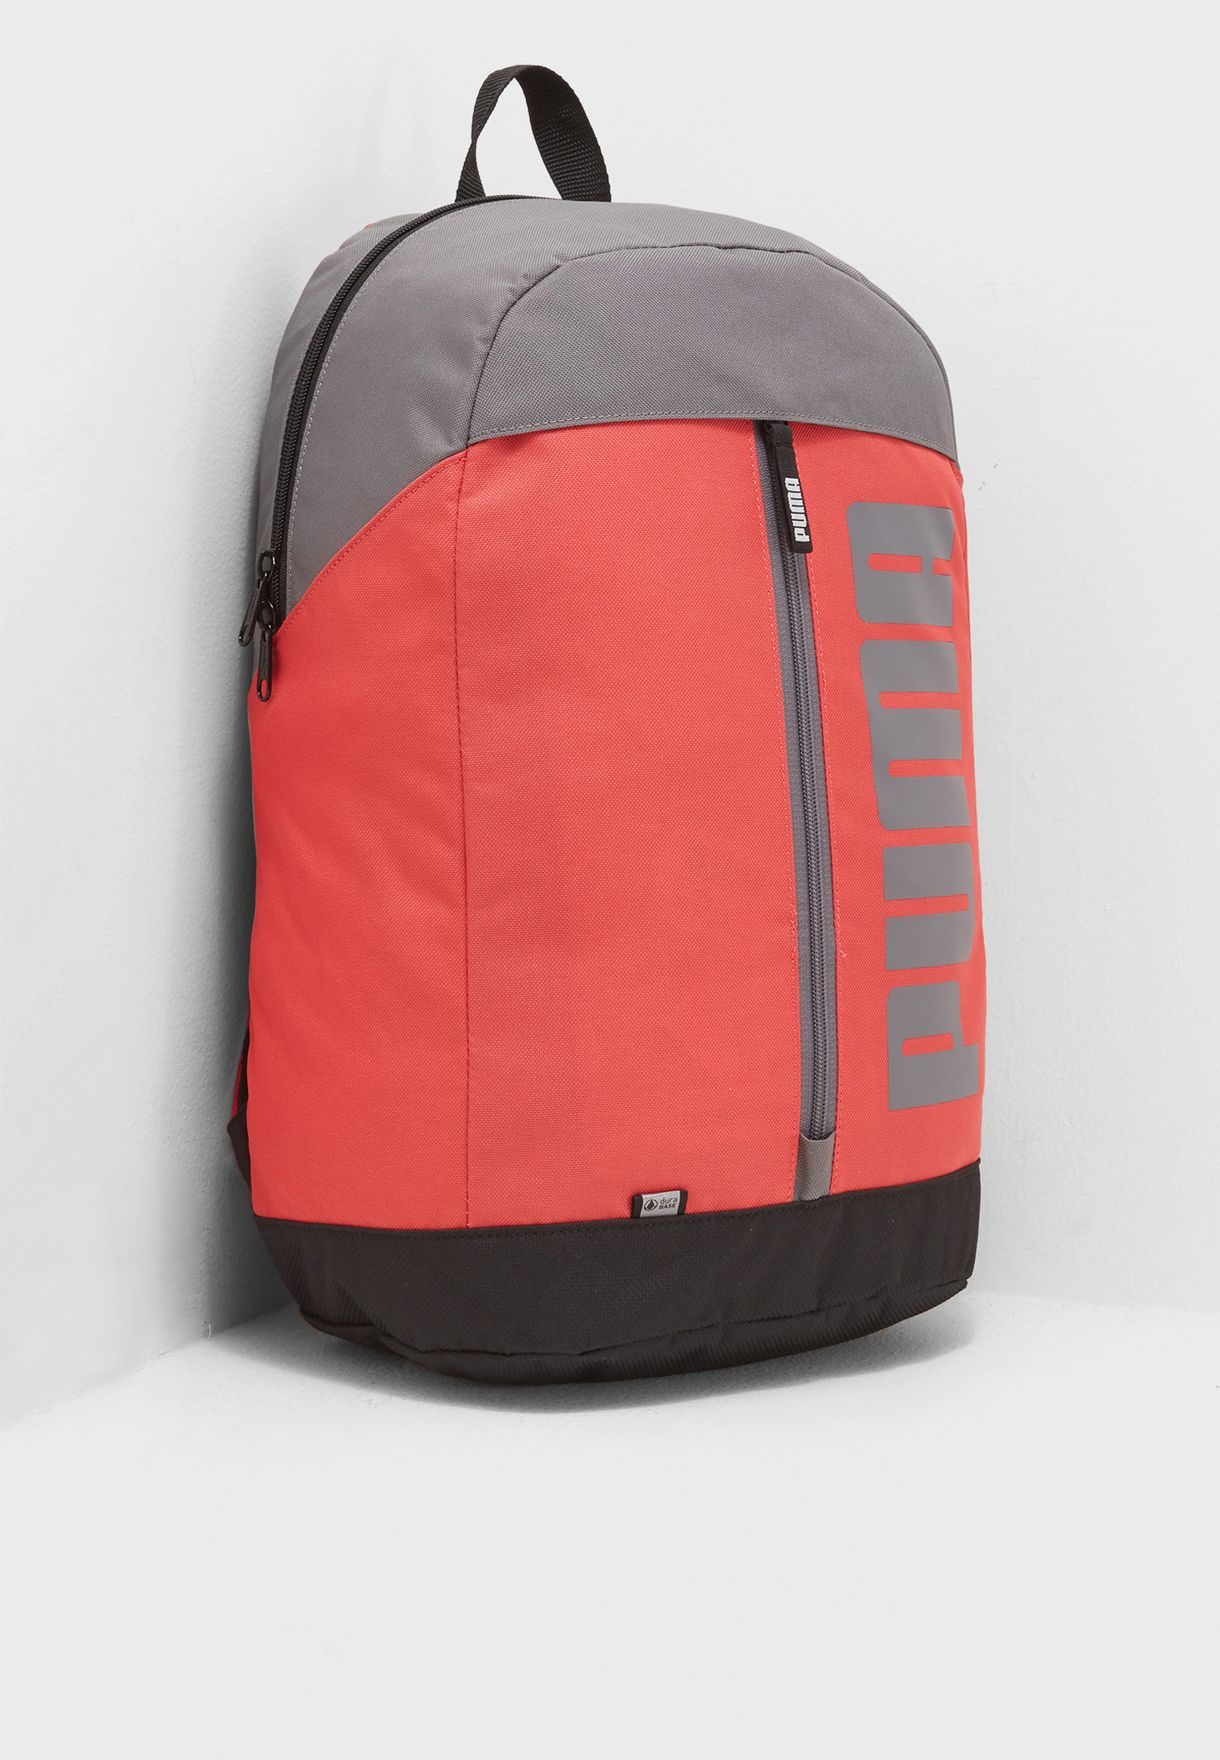 851ab6a435a Shop PUMA pink Pioneer Backpack 07510303 for Women in Globally ...